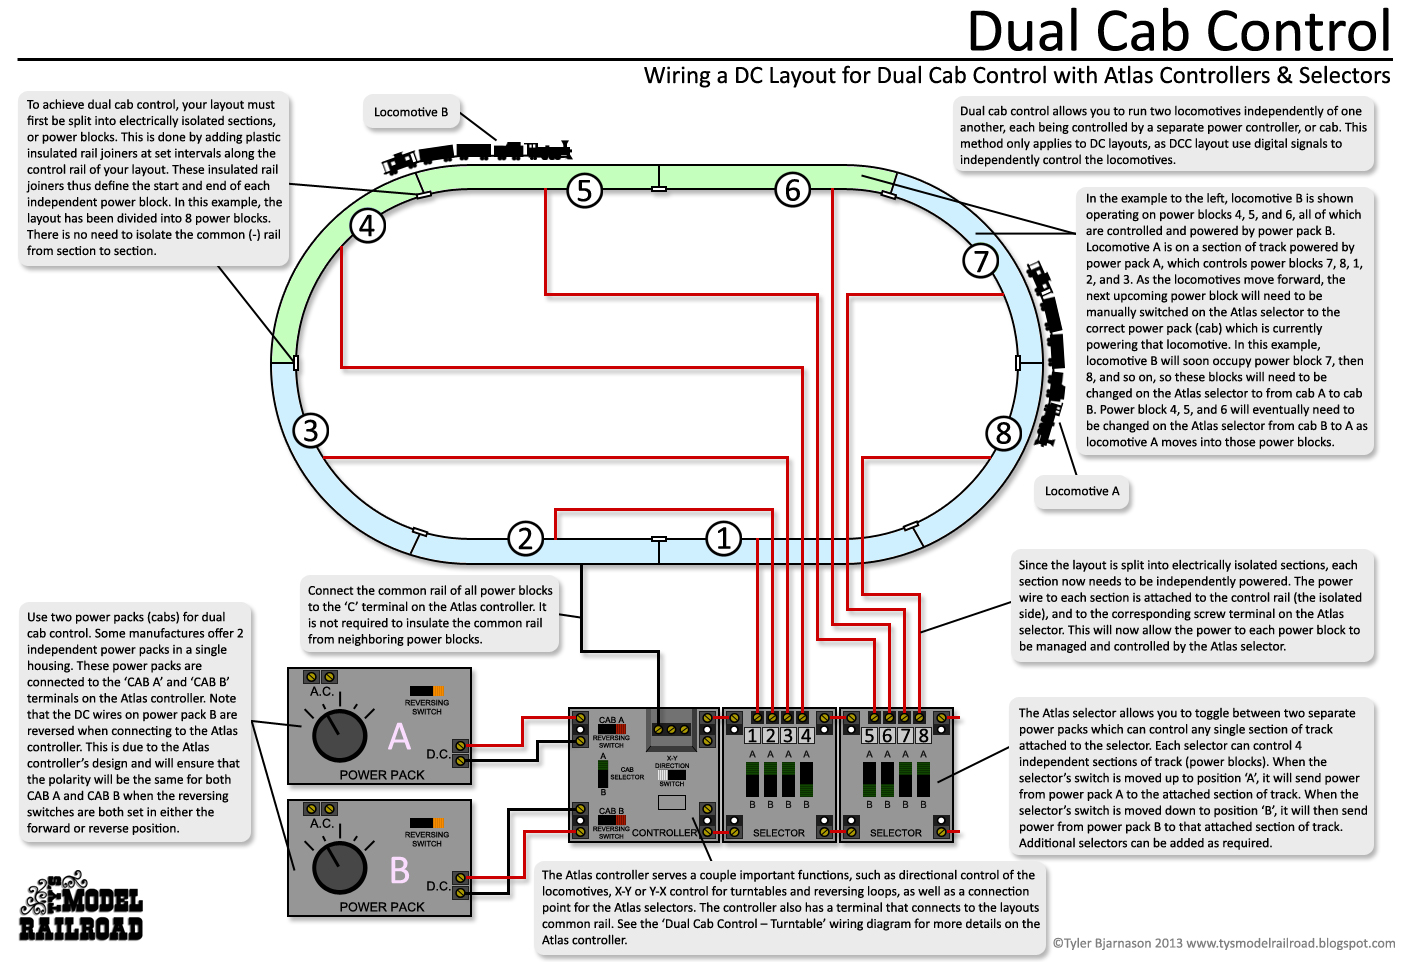 Dc Wire Diagram Archive Of Automotive Wiring Ez Power Window Ty S Model Railroad Diagrams Rh Tysmodelrailroad Blogspot Com Motor